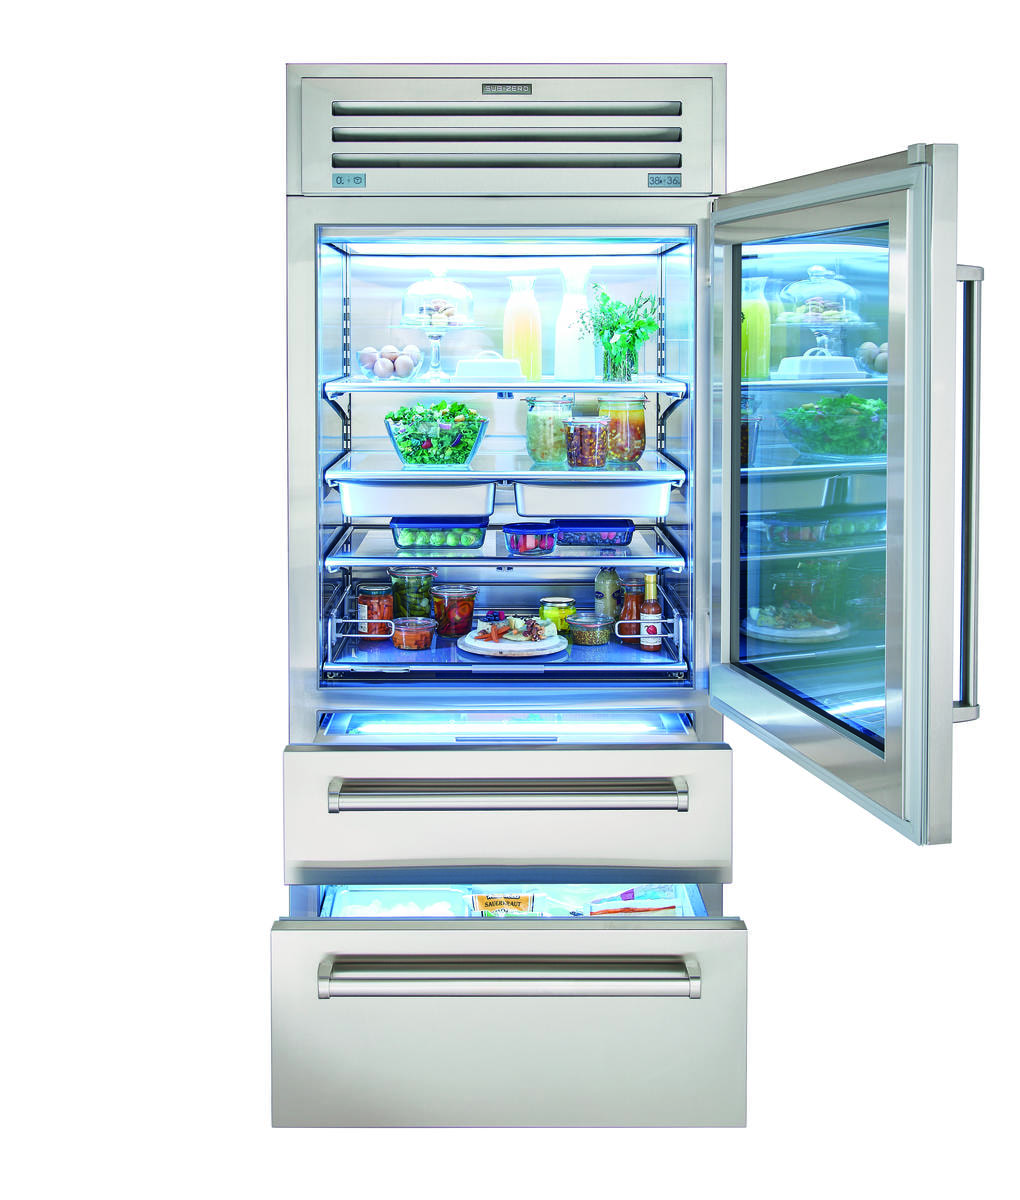 Sub zero 36 pro refrigerator freezer with glass door pro3650g - Glass door refrigerator freezer ...